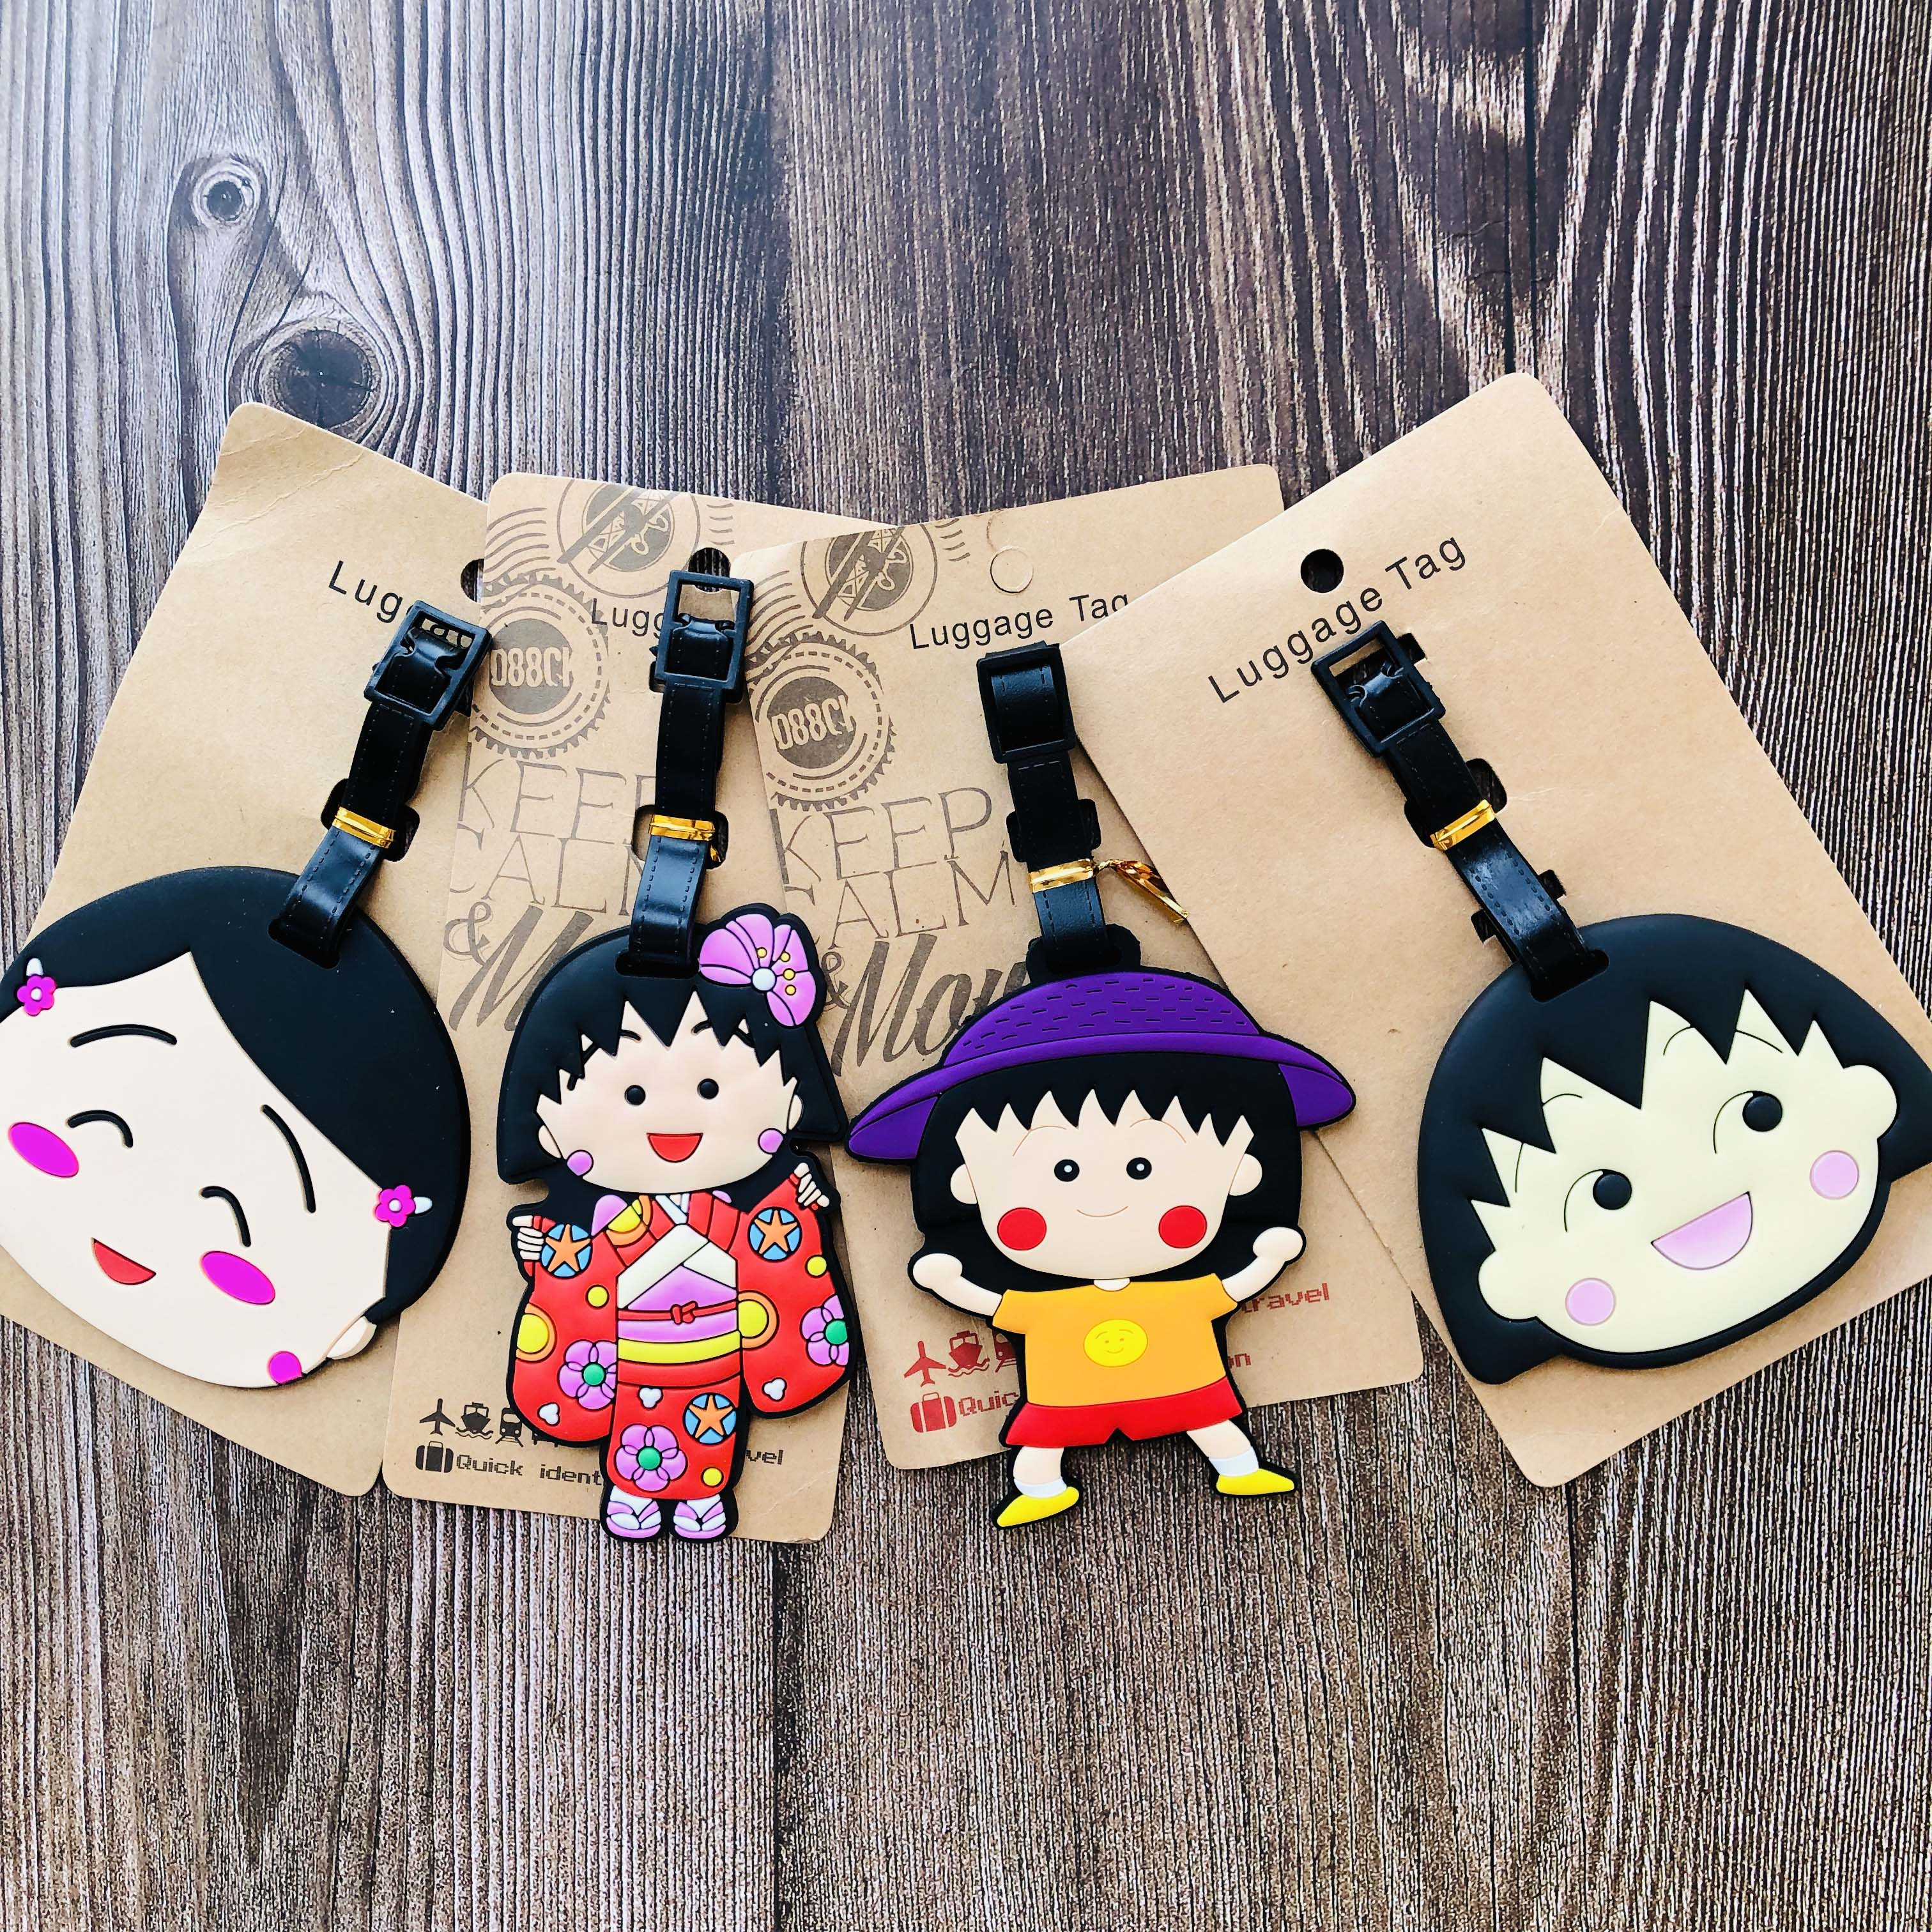 Chi-bi Maruko Style Anime Travel Accessories Luggage Tag Suitcase ID Portable Tags Holder Baggage Labels Gifts New